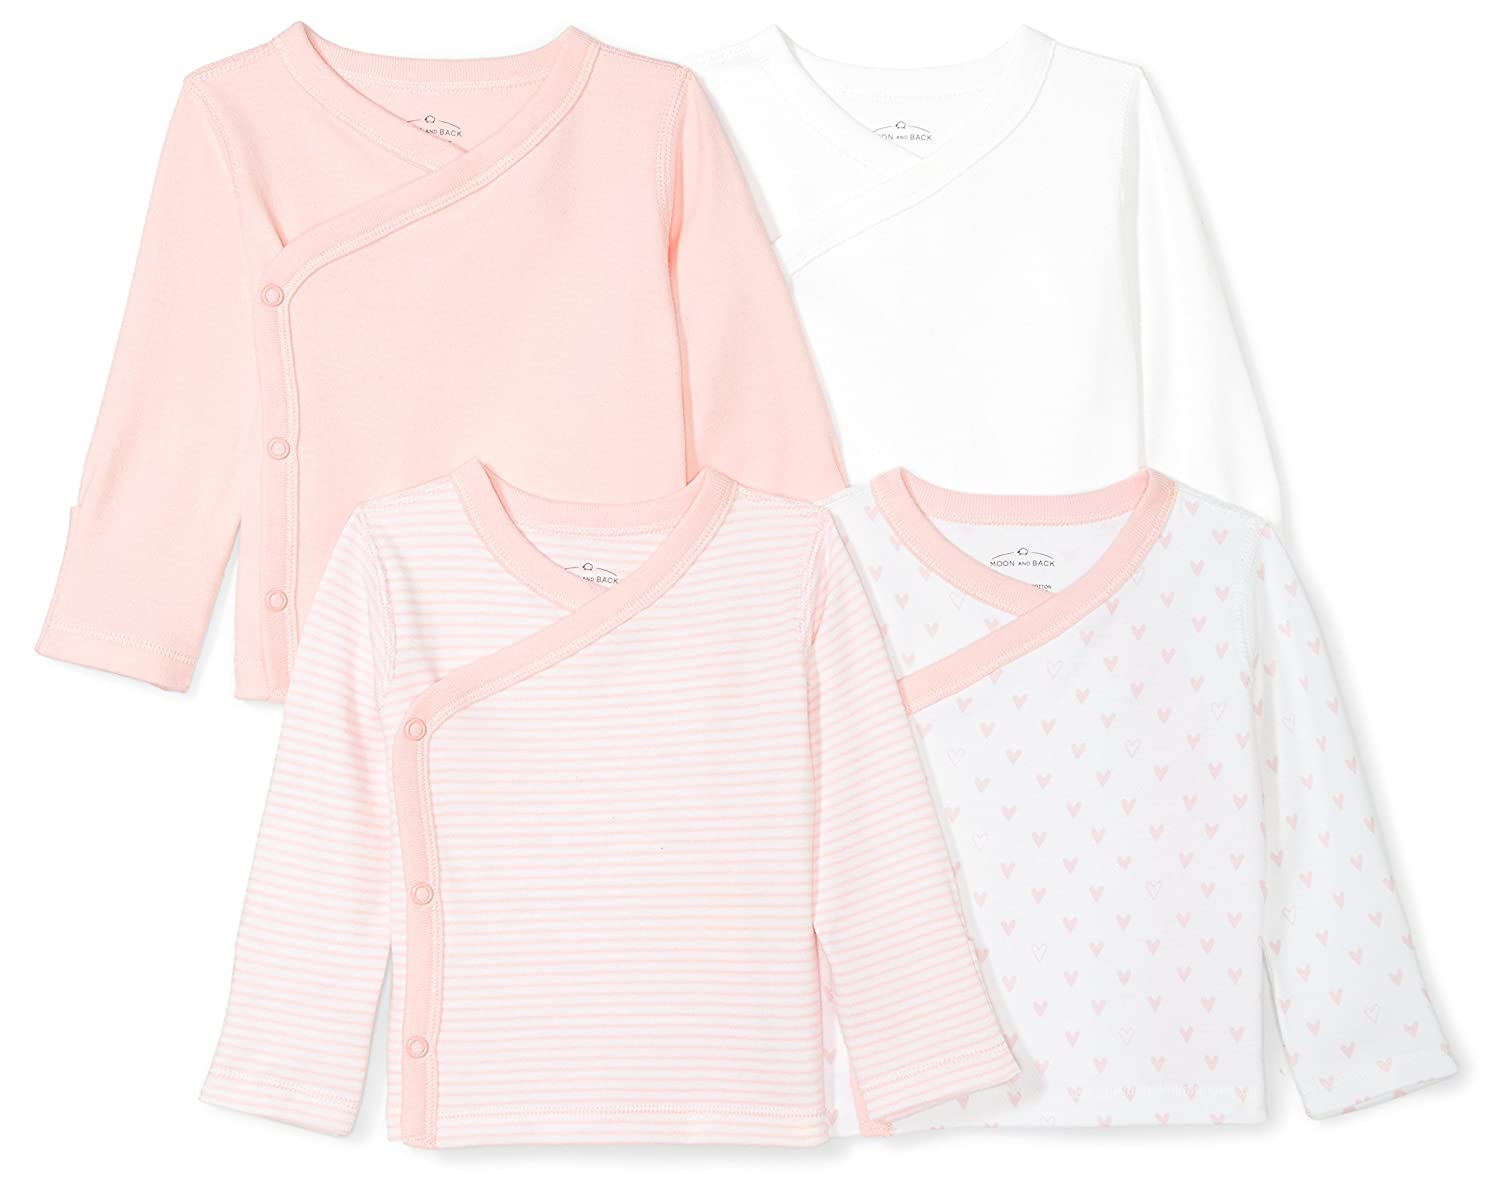 Moon and Back Baby Set of 4 Organic Long-Sleeve Side-Snap Shirts 6-9 Months Pink Blush